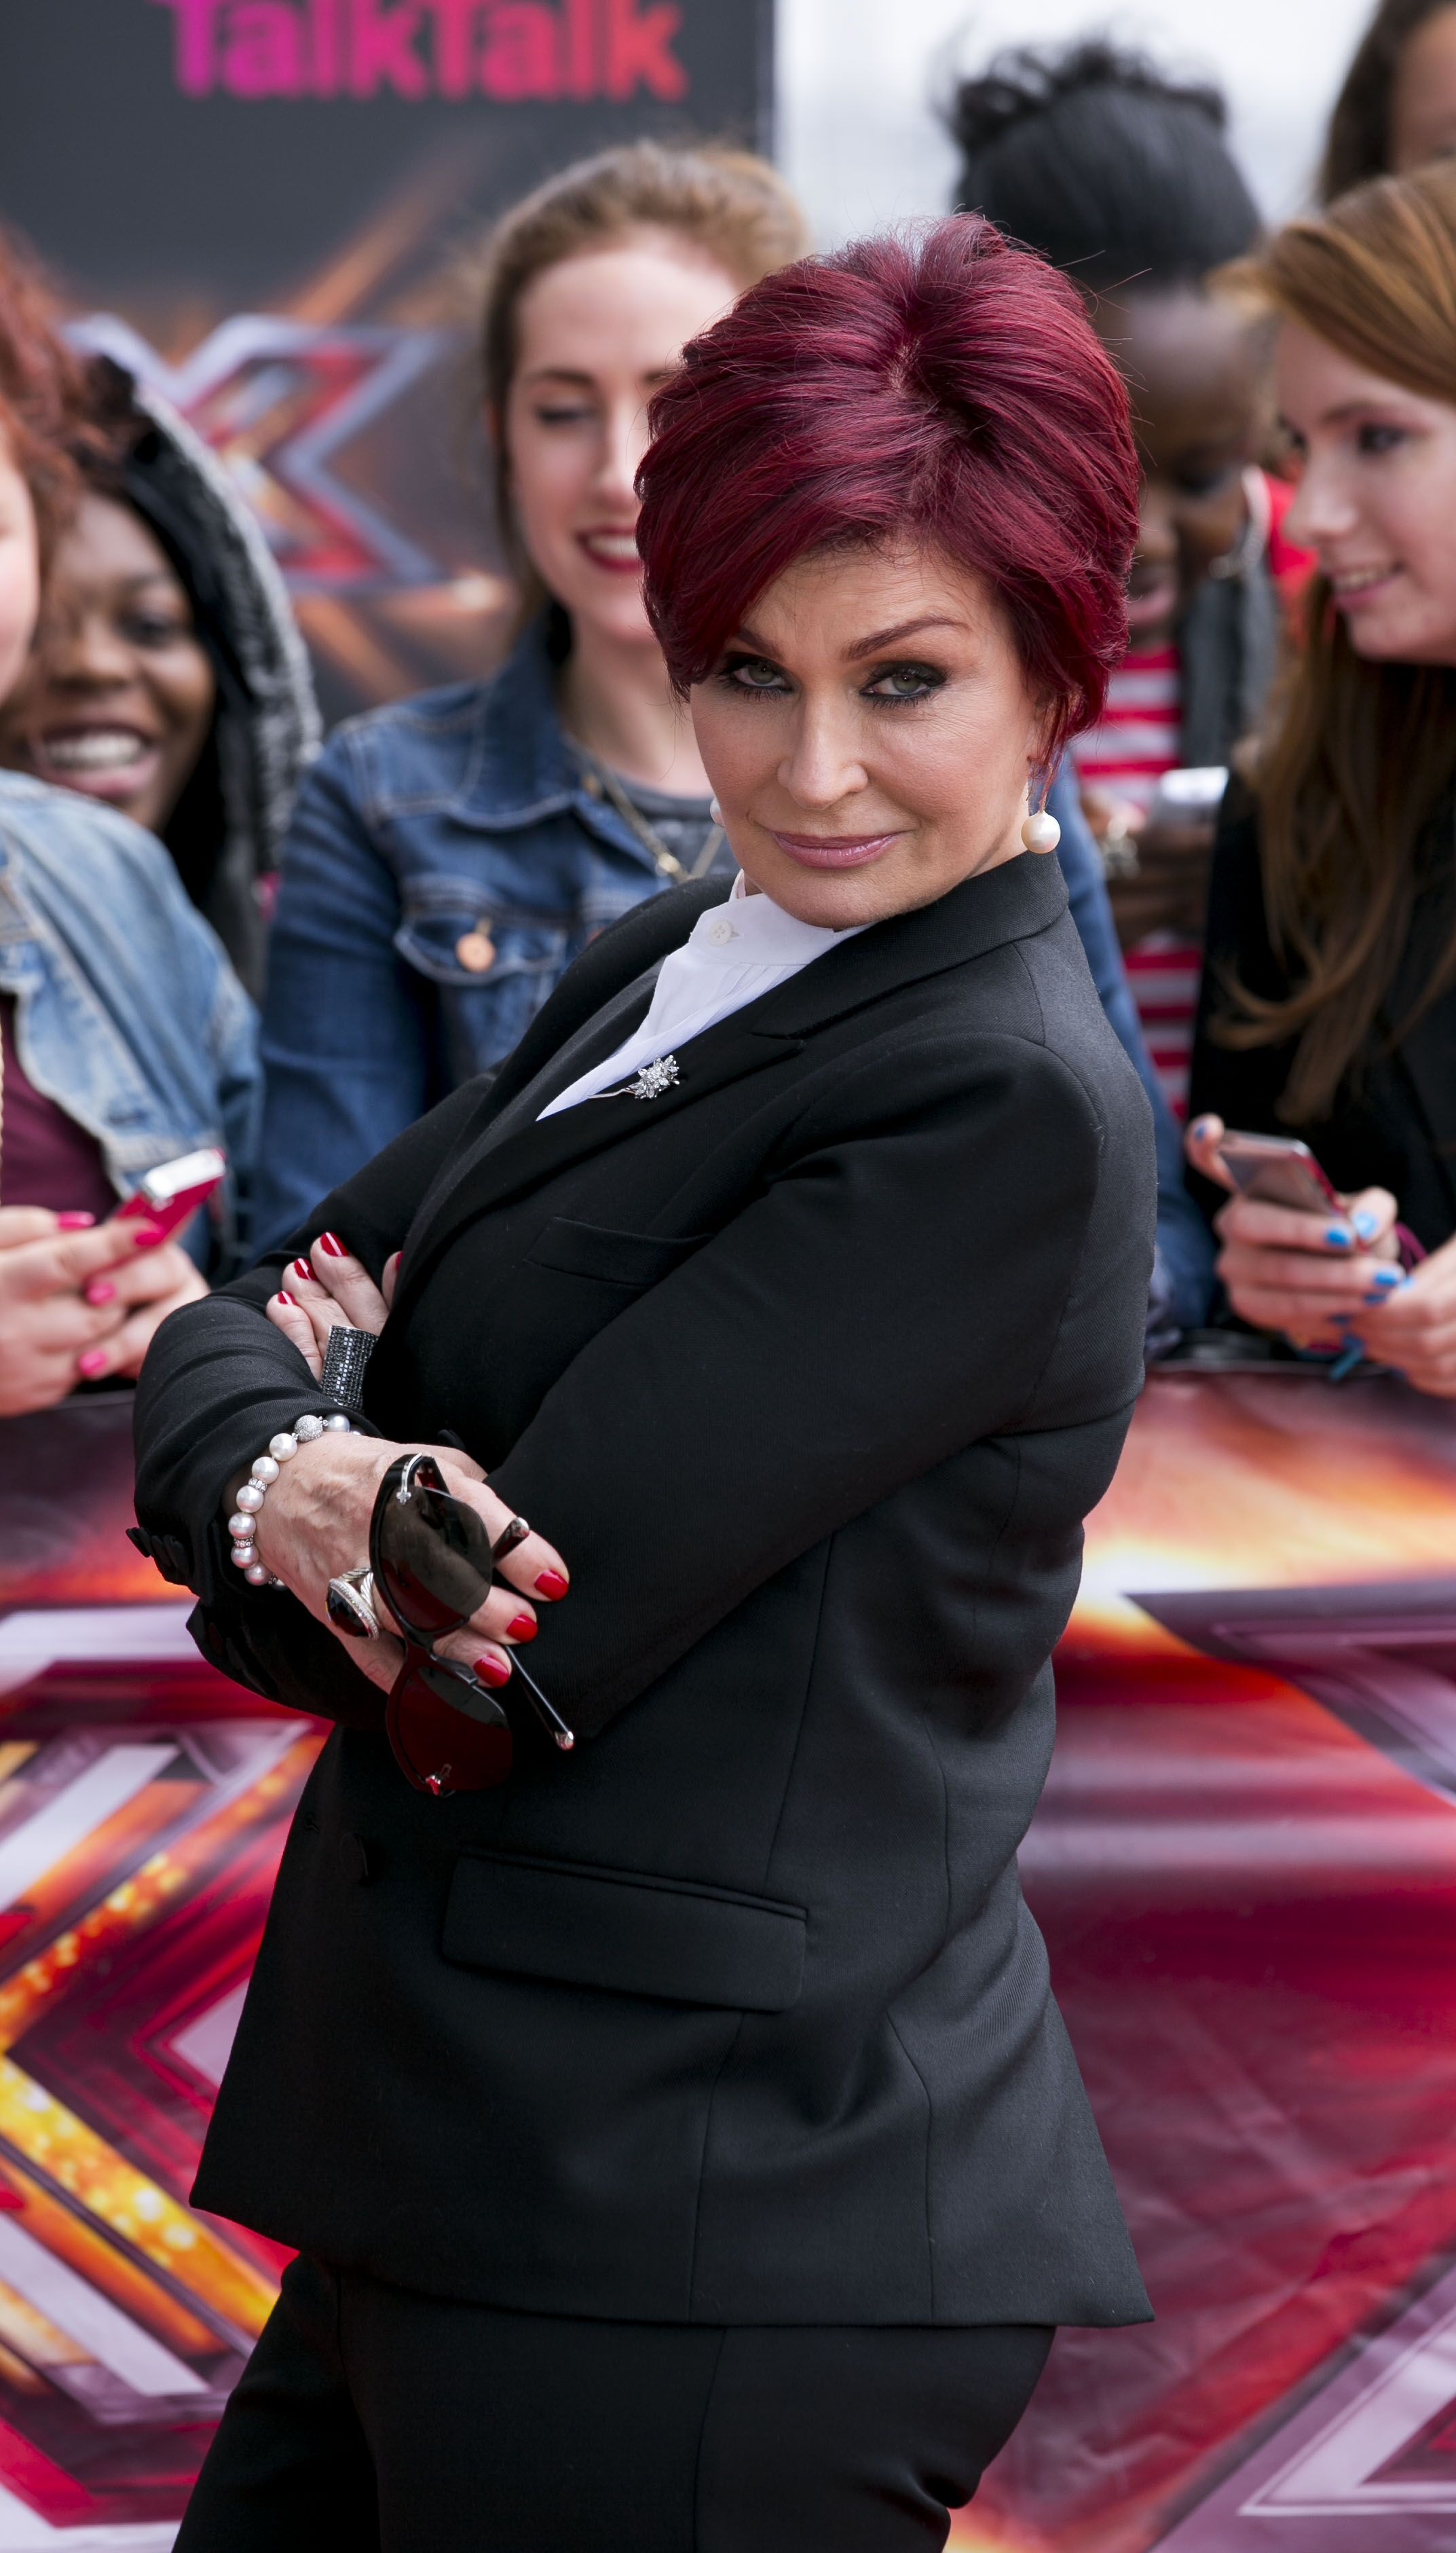 Sharon Osbourne at the London auditions of 'The X Factor' in 2013 | Source: Getty Images